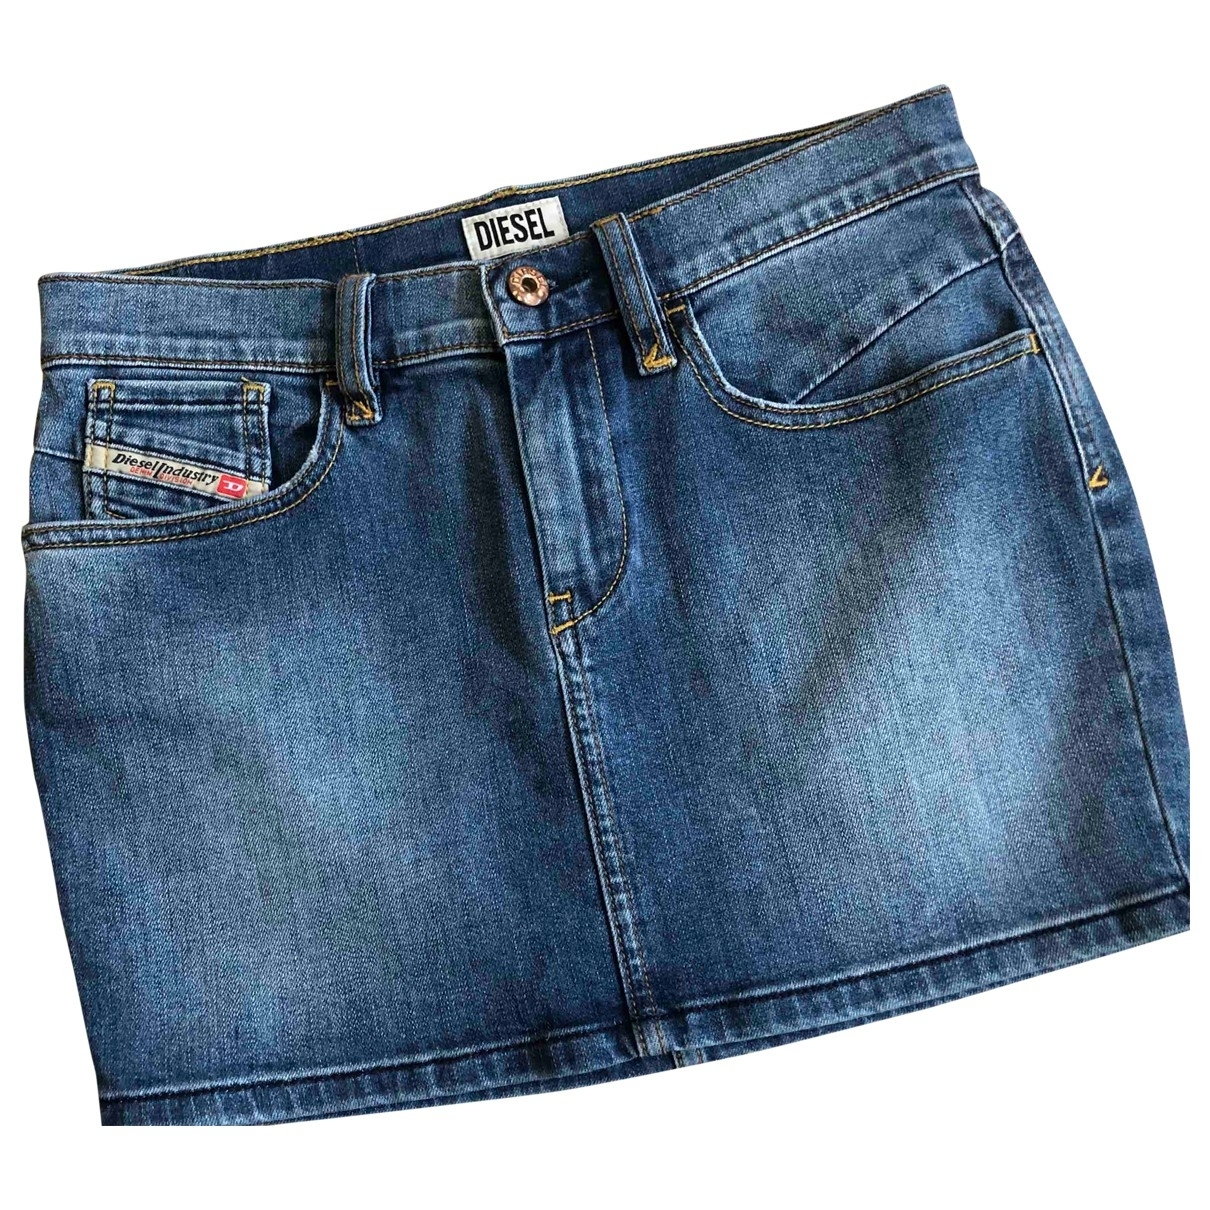 Diesel \N Blue Denim - Jeans skirt for Women 36 FR